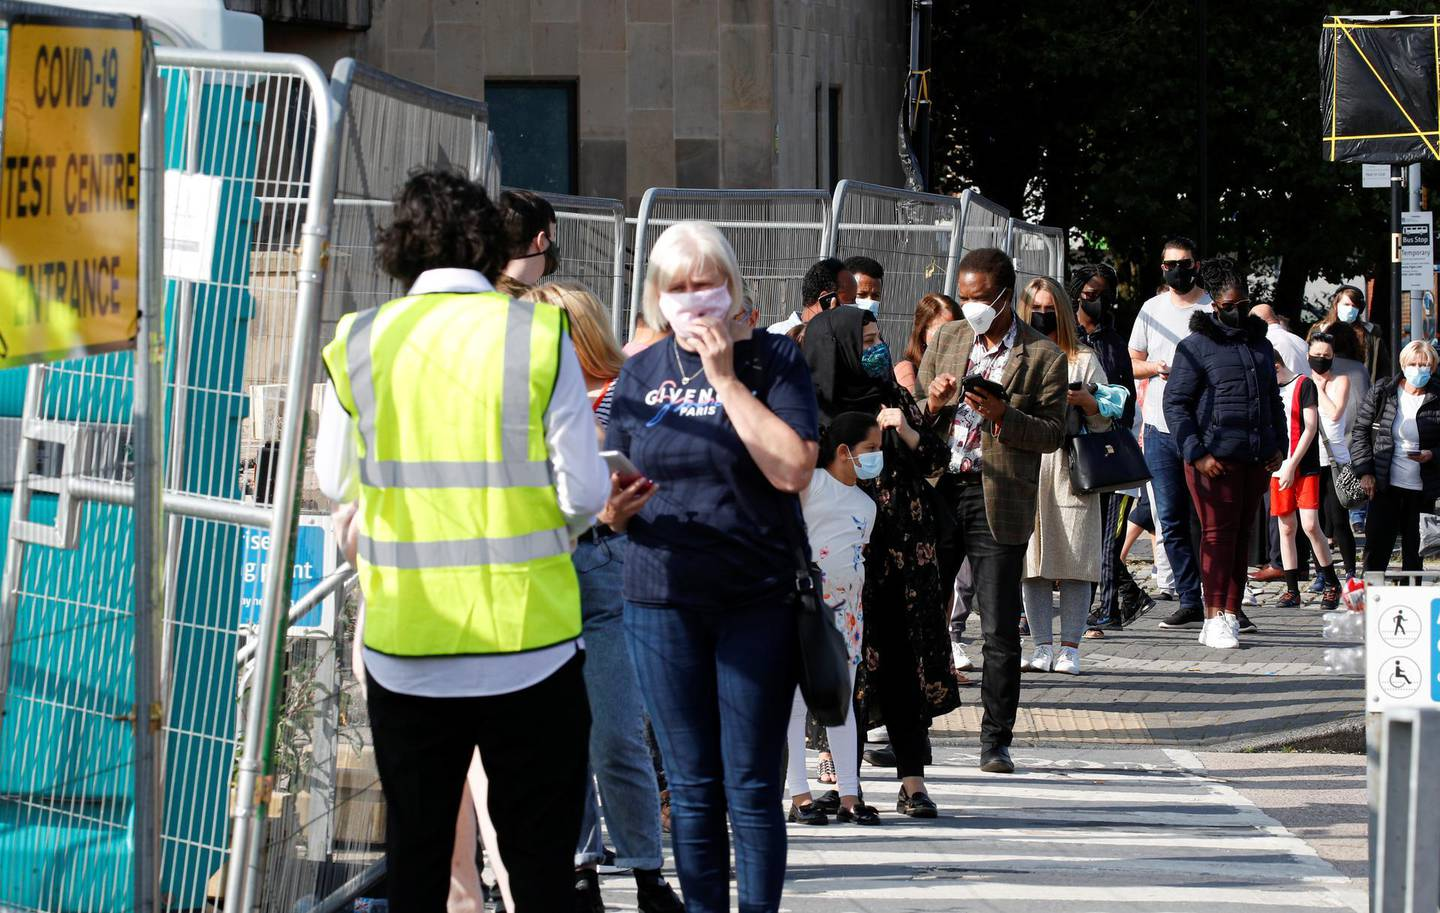 People queue outside a test centre to take a coronavirus test amid the coronavirus disease (COVID-19) outbreak, in Bolton, Britain, September 17, 2020. REUTERS/Phil Noble